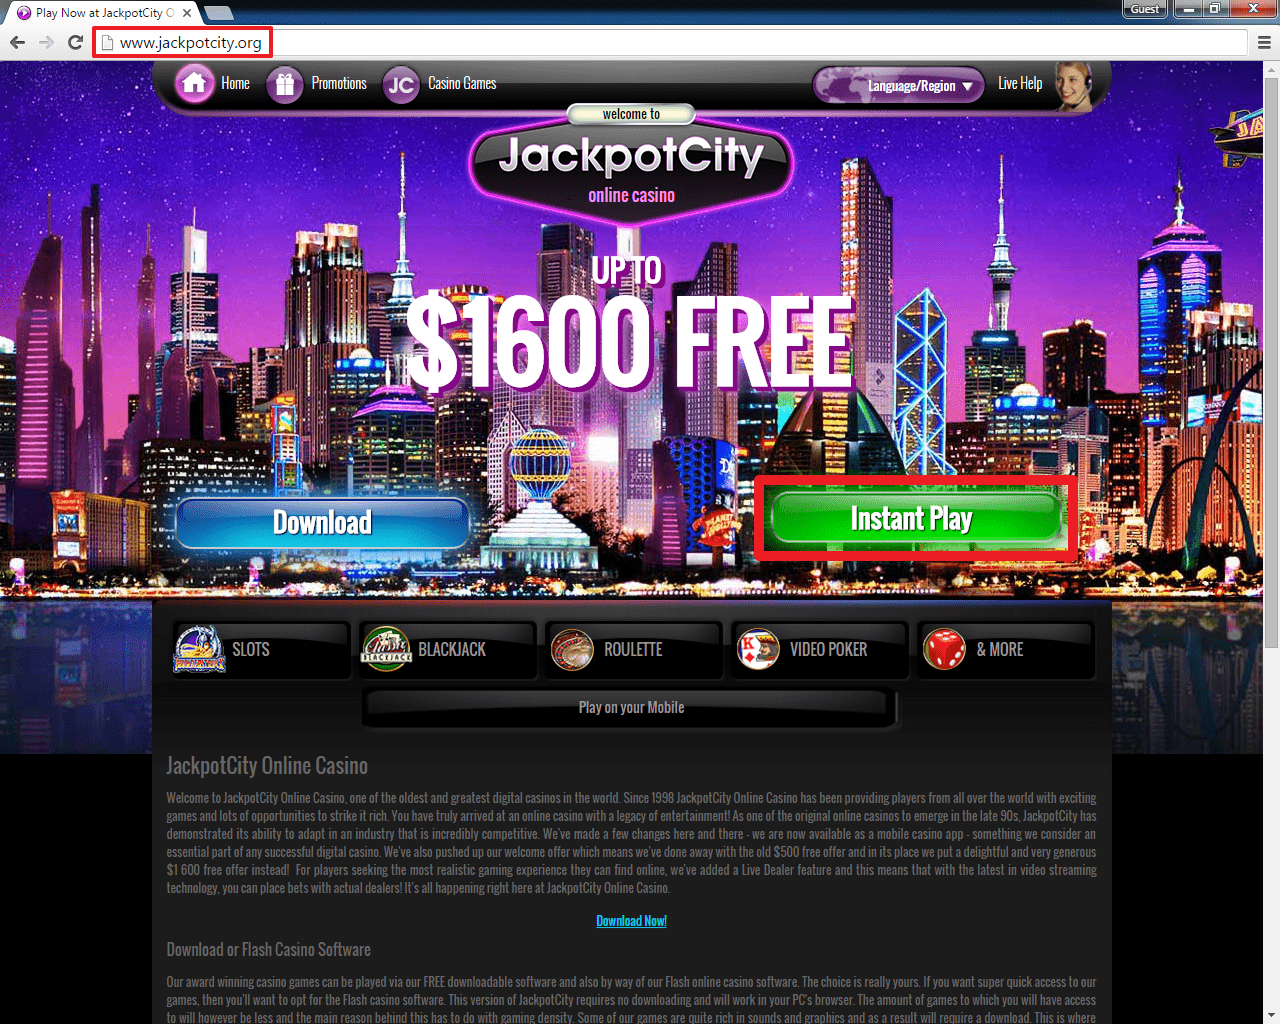 jackpot city casino instant play